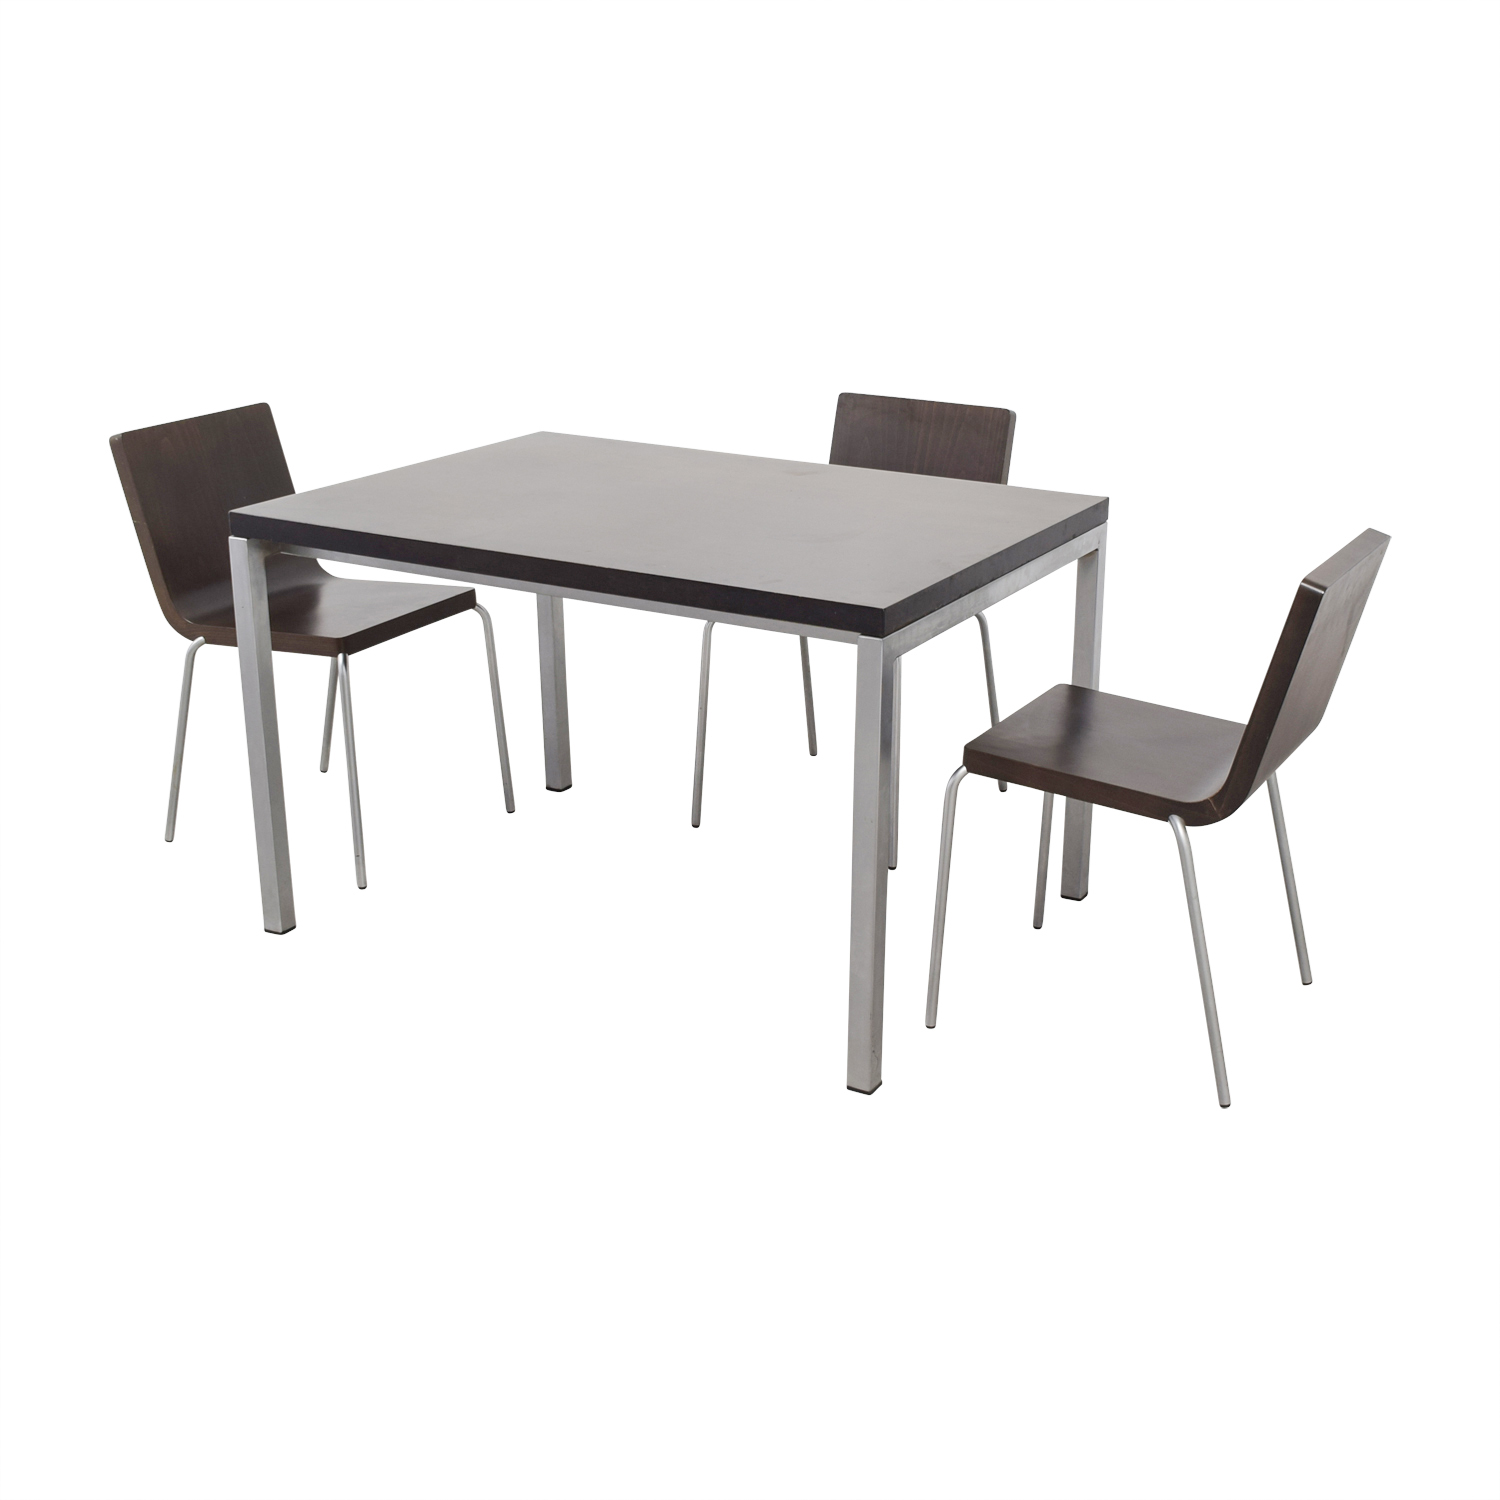 Wood and Metal Dining Set used